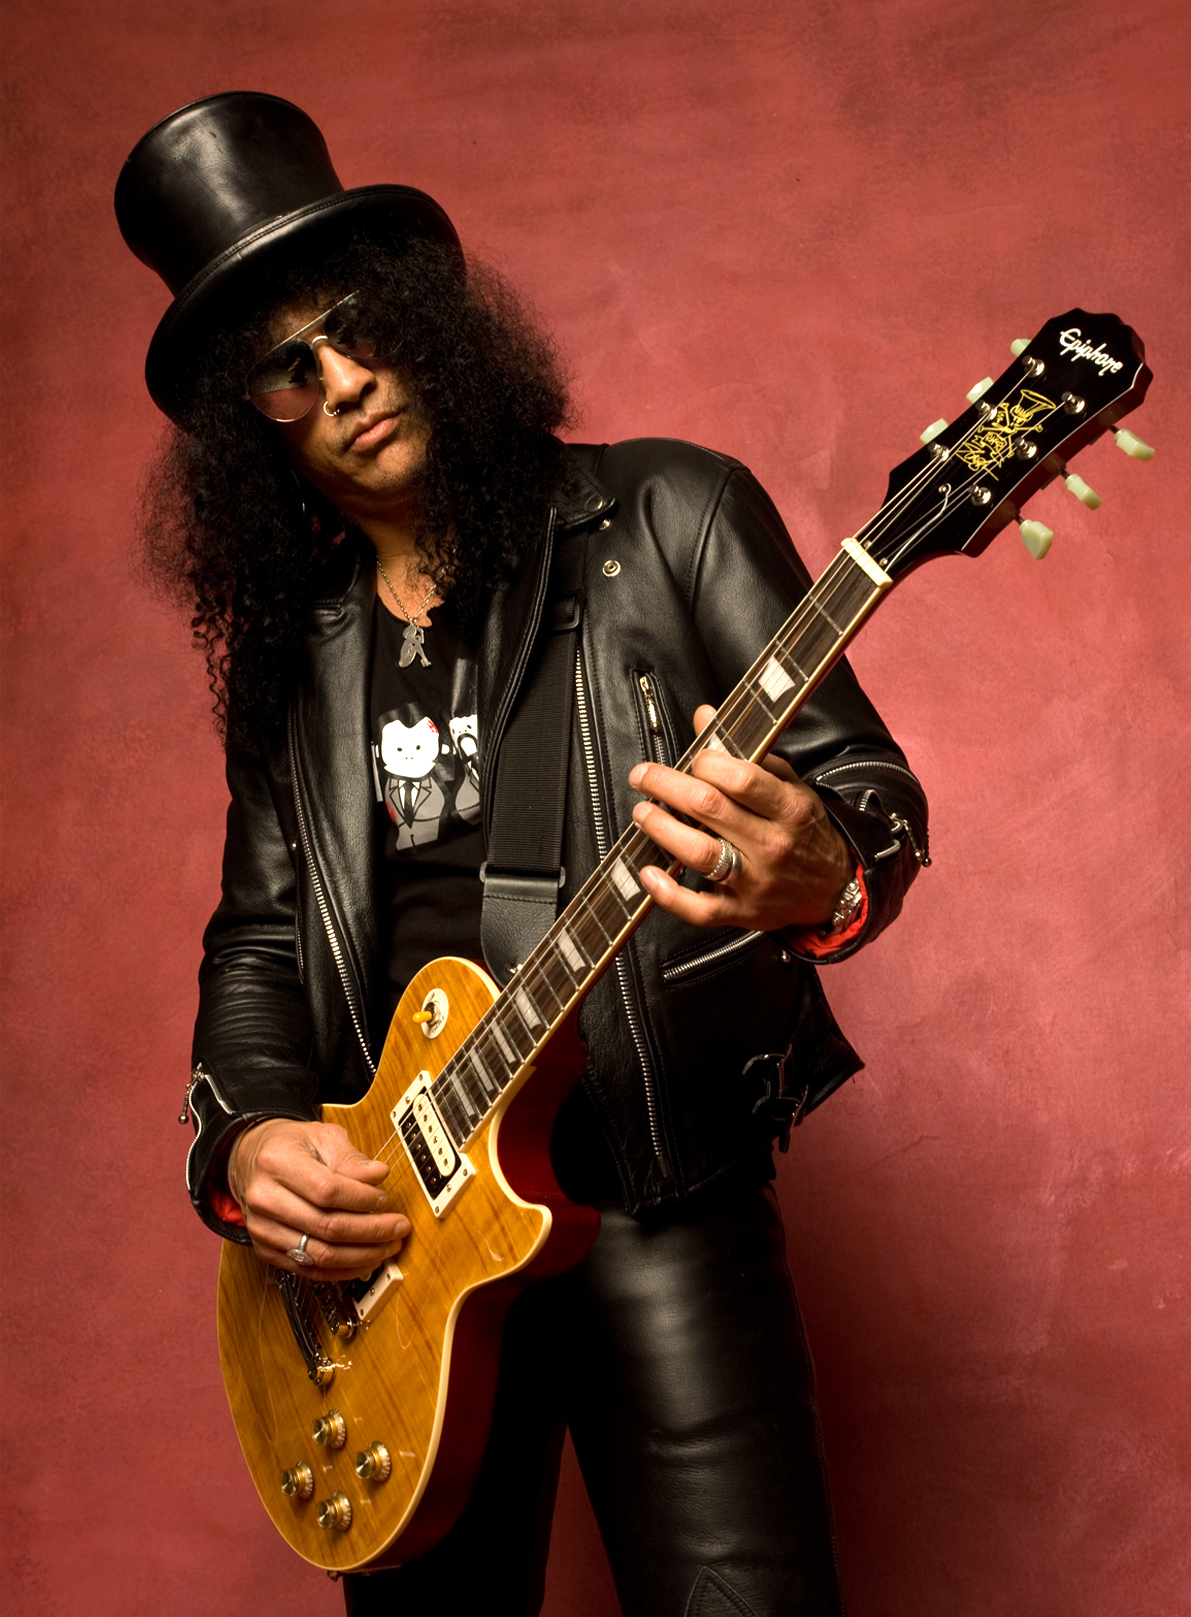 http://images6.fanpop.com/image/photos/32100000/Slash-slash-32142120-1191-1617.jpg